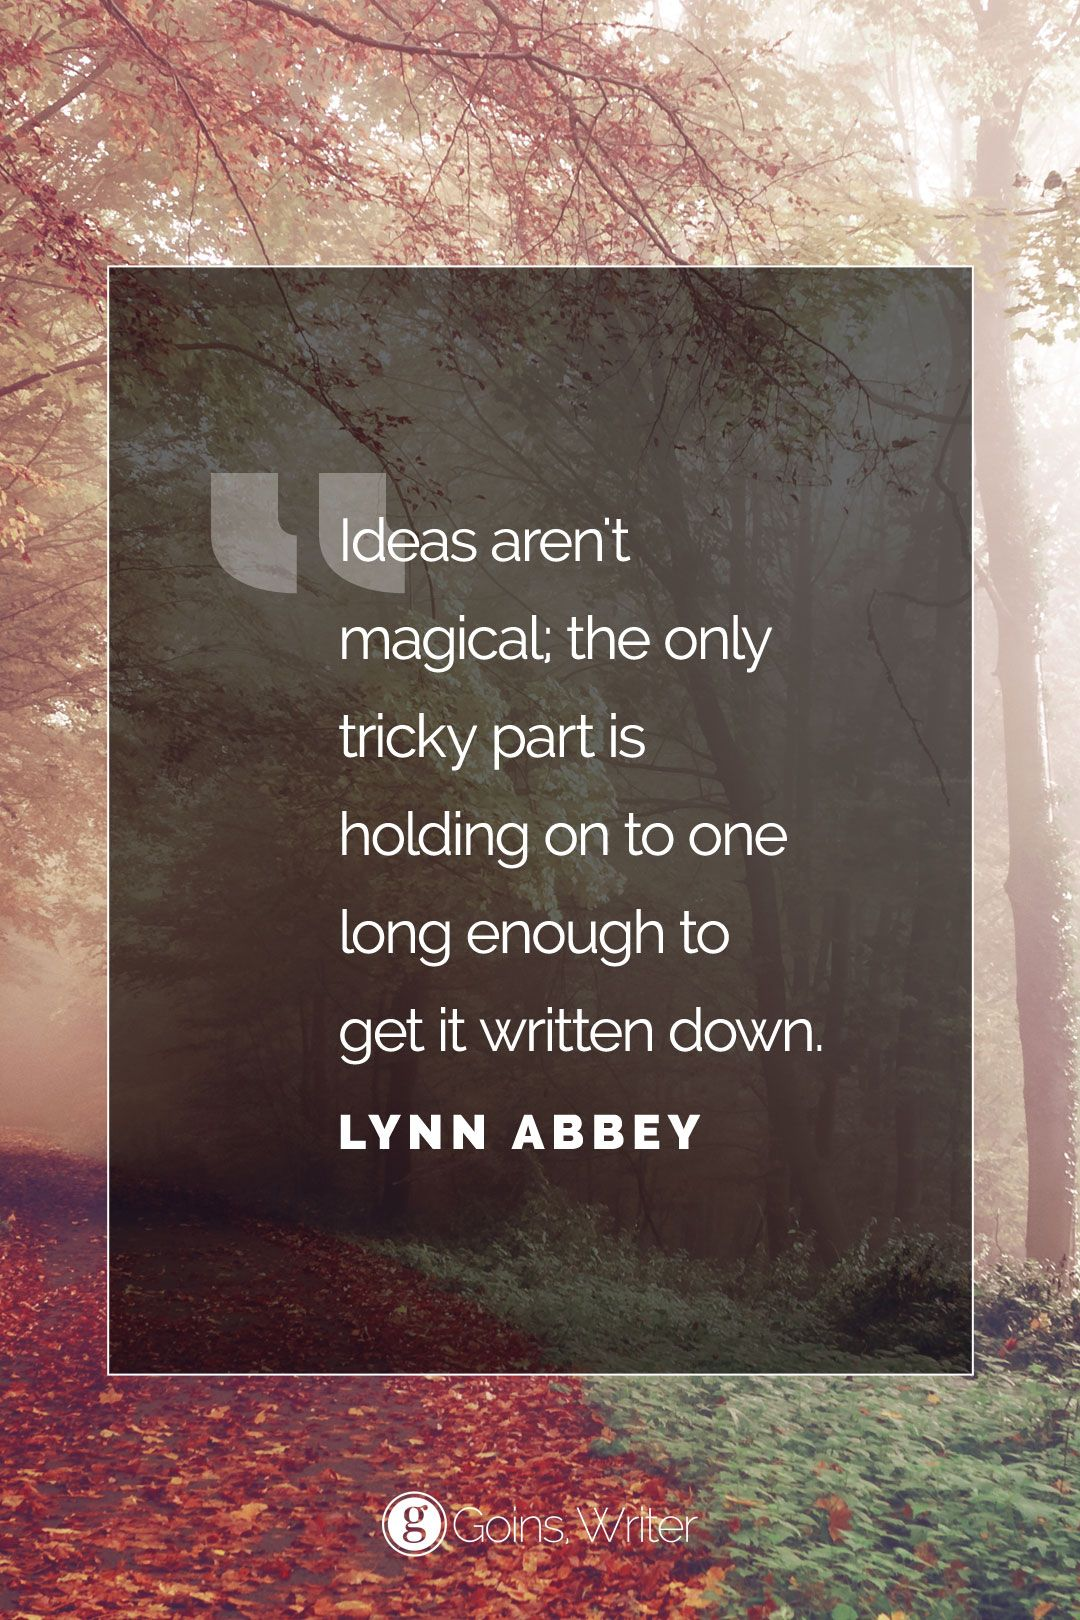 """Ideas aren't magical; the only tricky part is holding on to one long enough to get it written down."" ―Lynn Abbey"